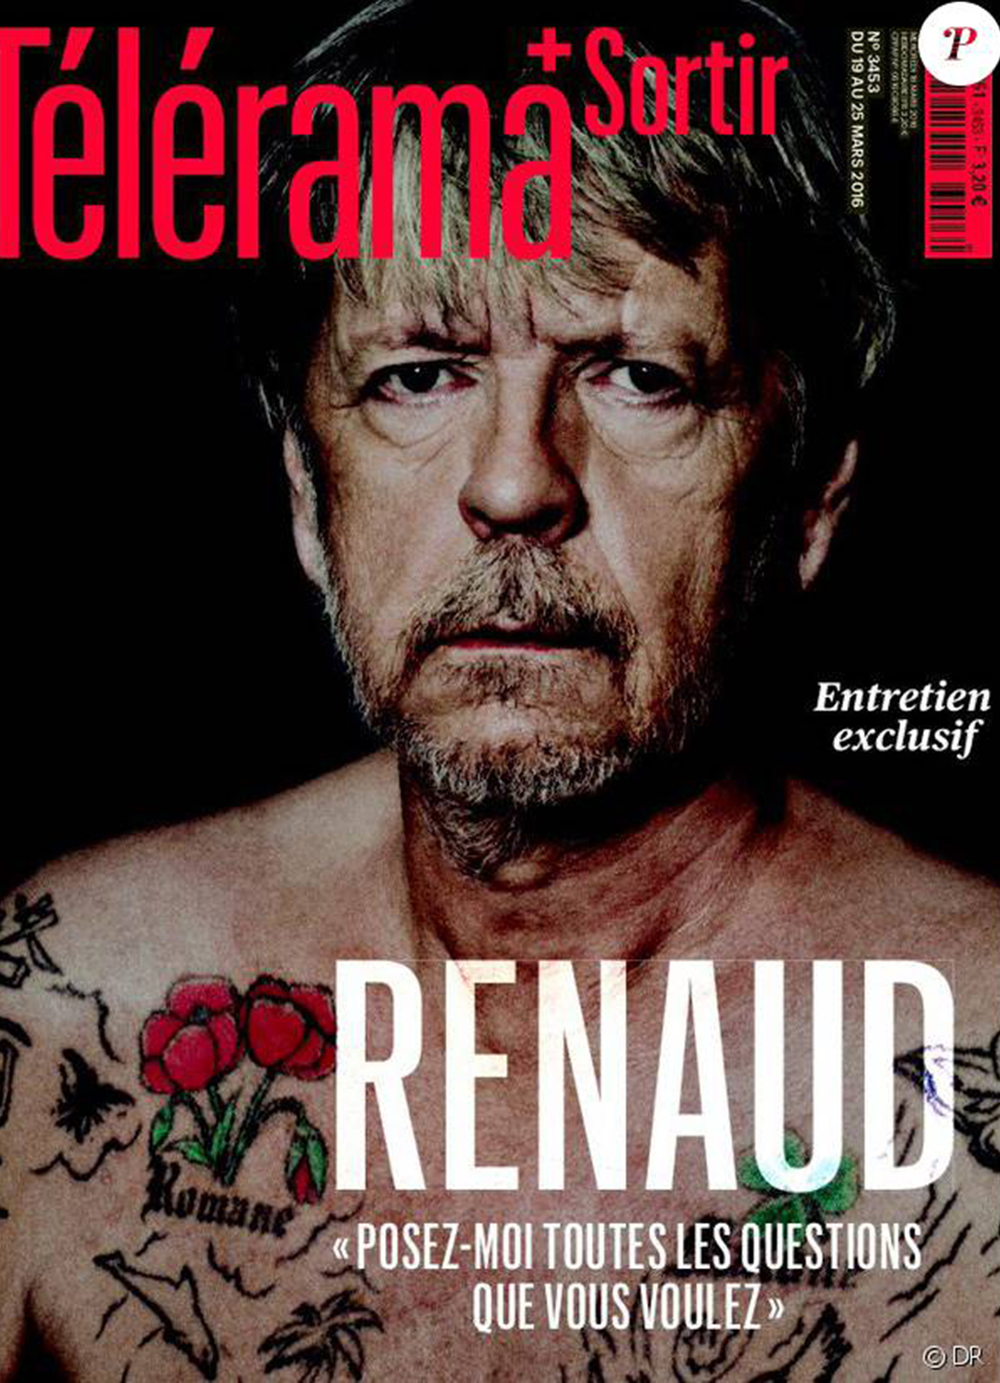 THE KID in TELERAMA French Leading Cultural Weekly Magazine March 2016.jpg